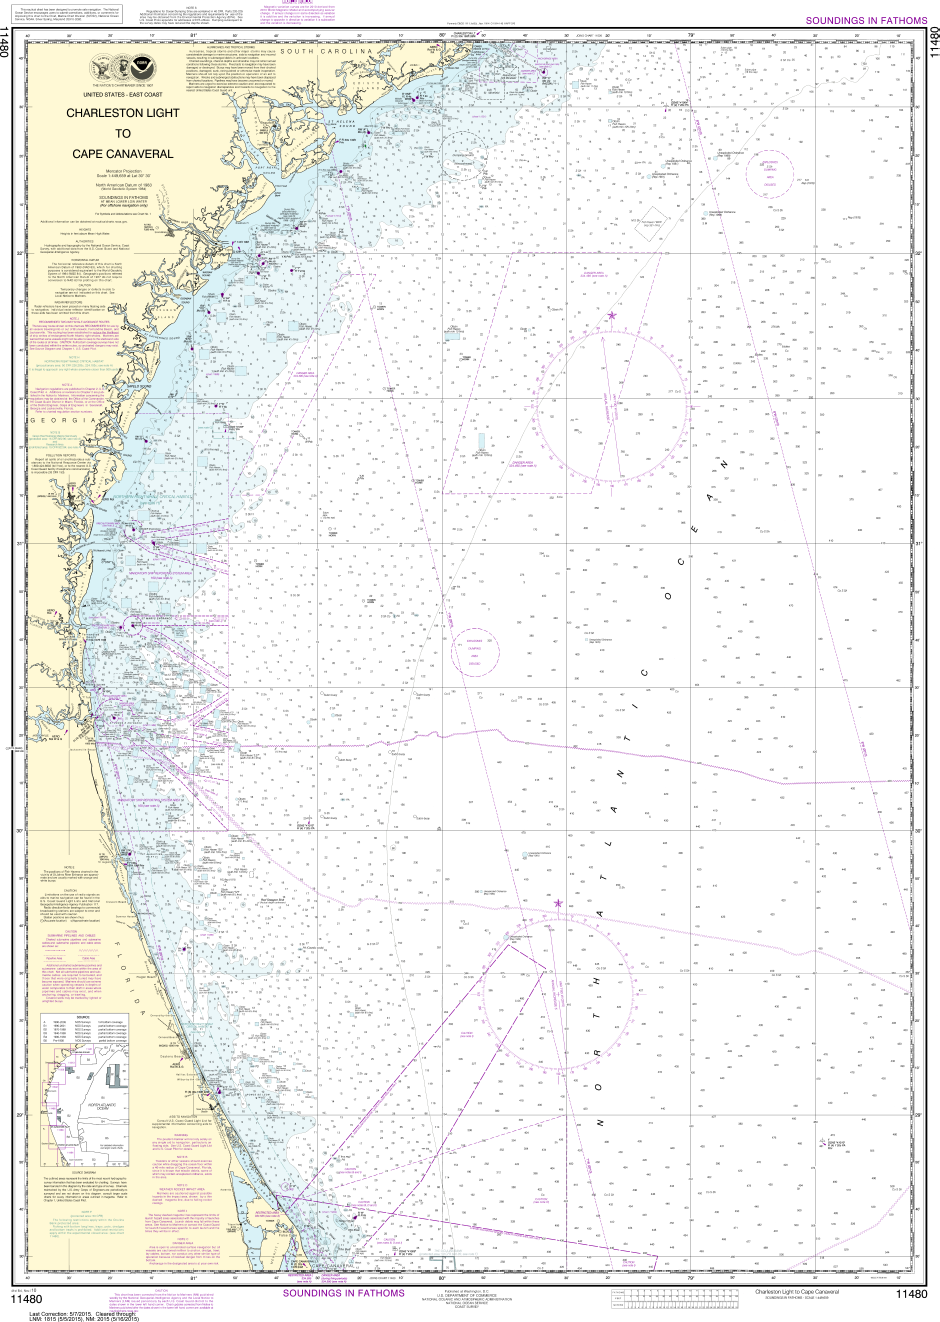 NOAA Print-on-Demand Charts US Waters-Charleston Light to Cape Canaveral-11480